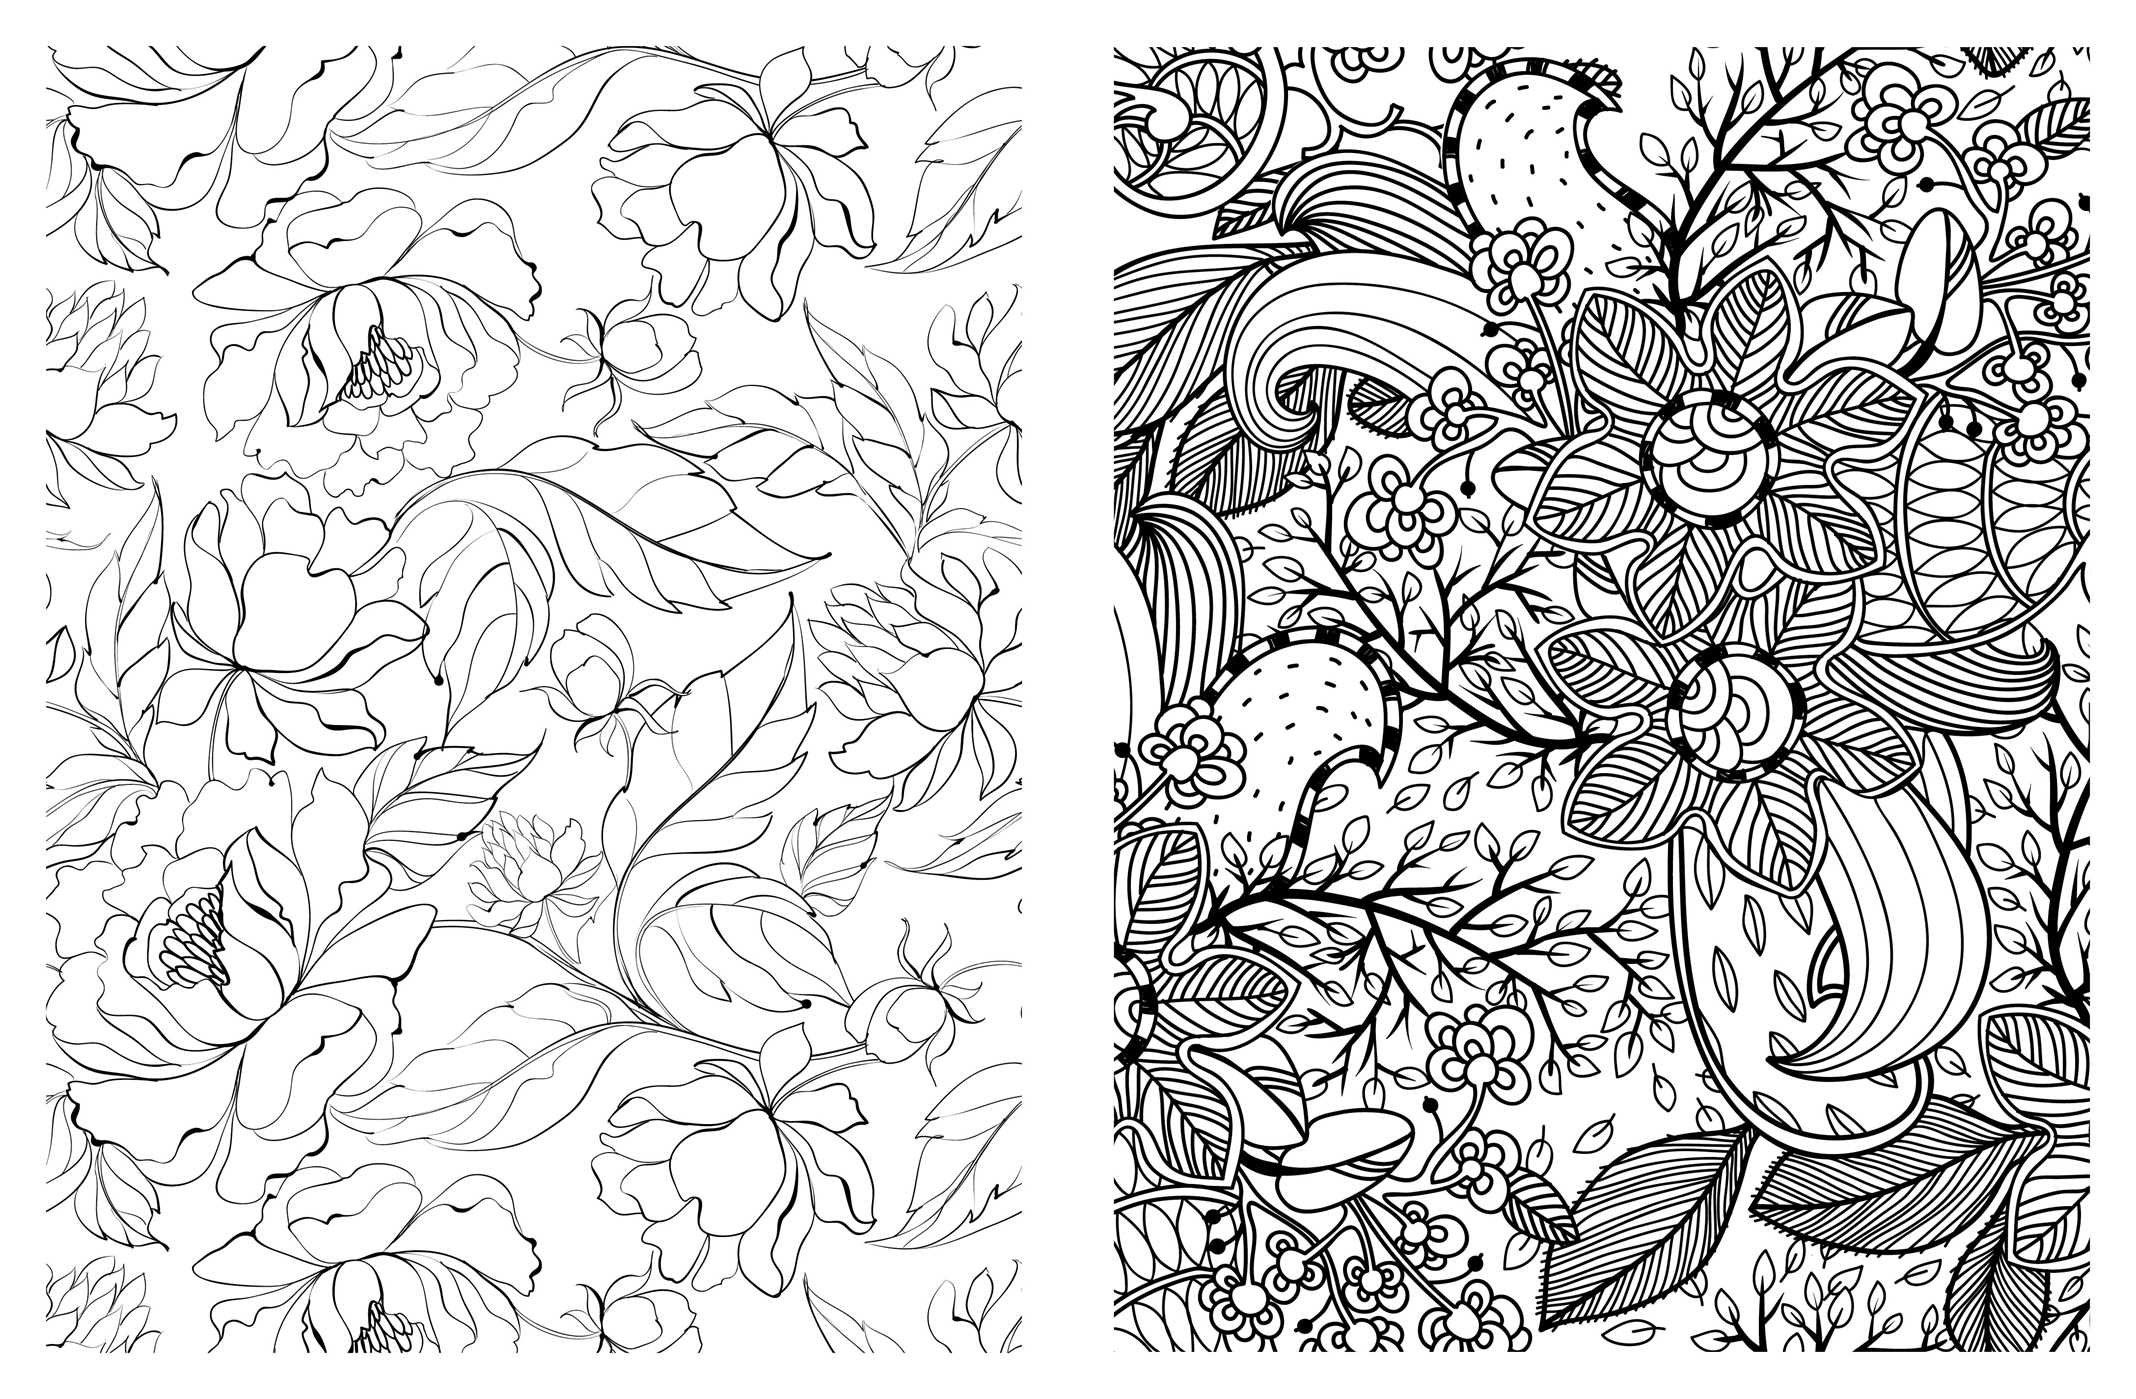 Vintage Patterns Coloring Pages. Amazon com  Posh Adult Coloring Book Pretty Designs for Fun Relaxation